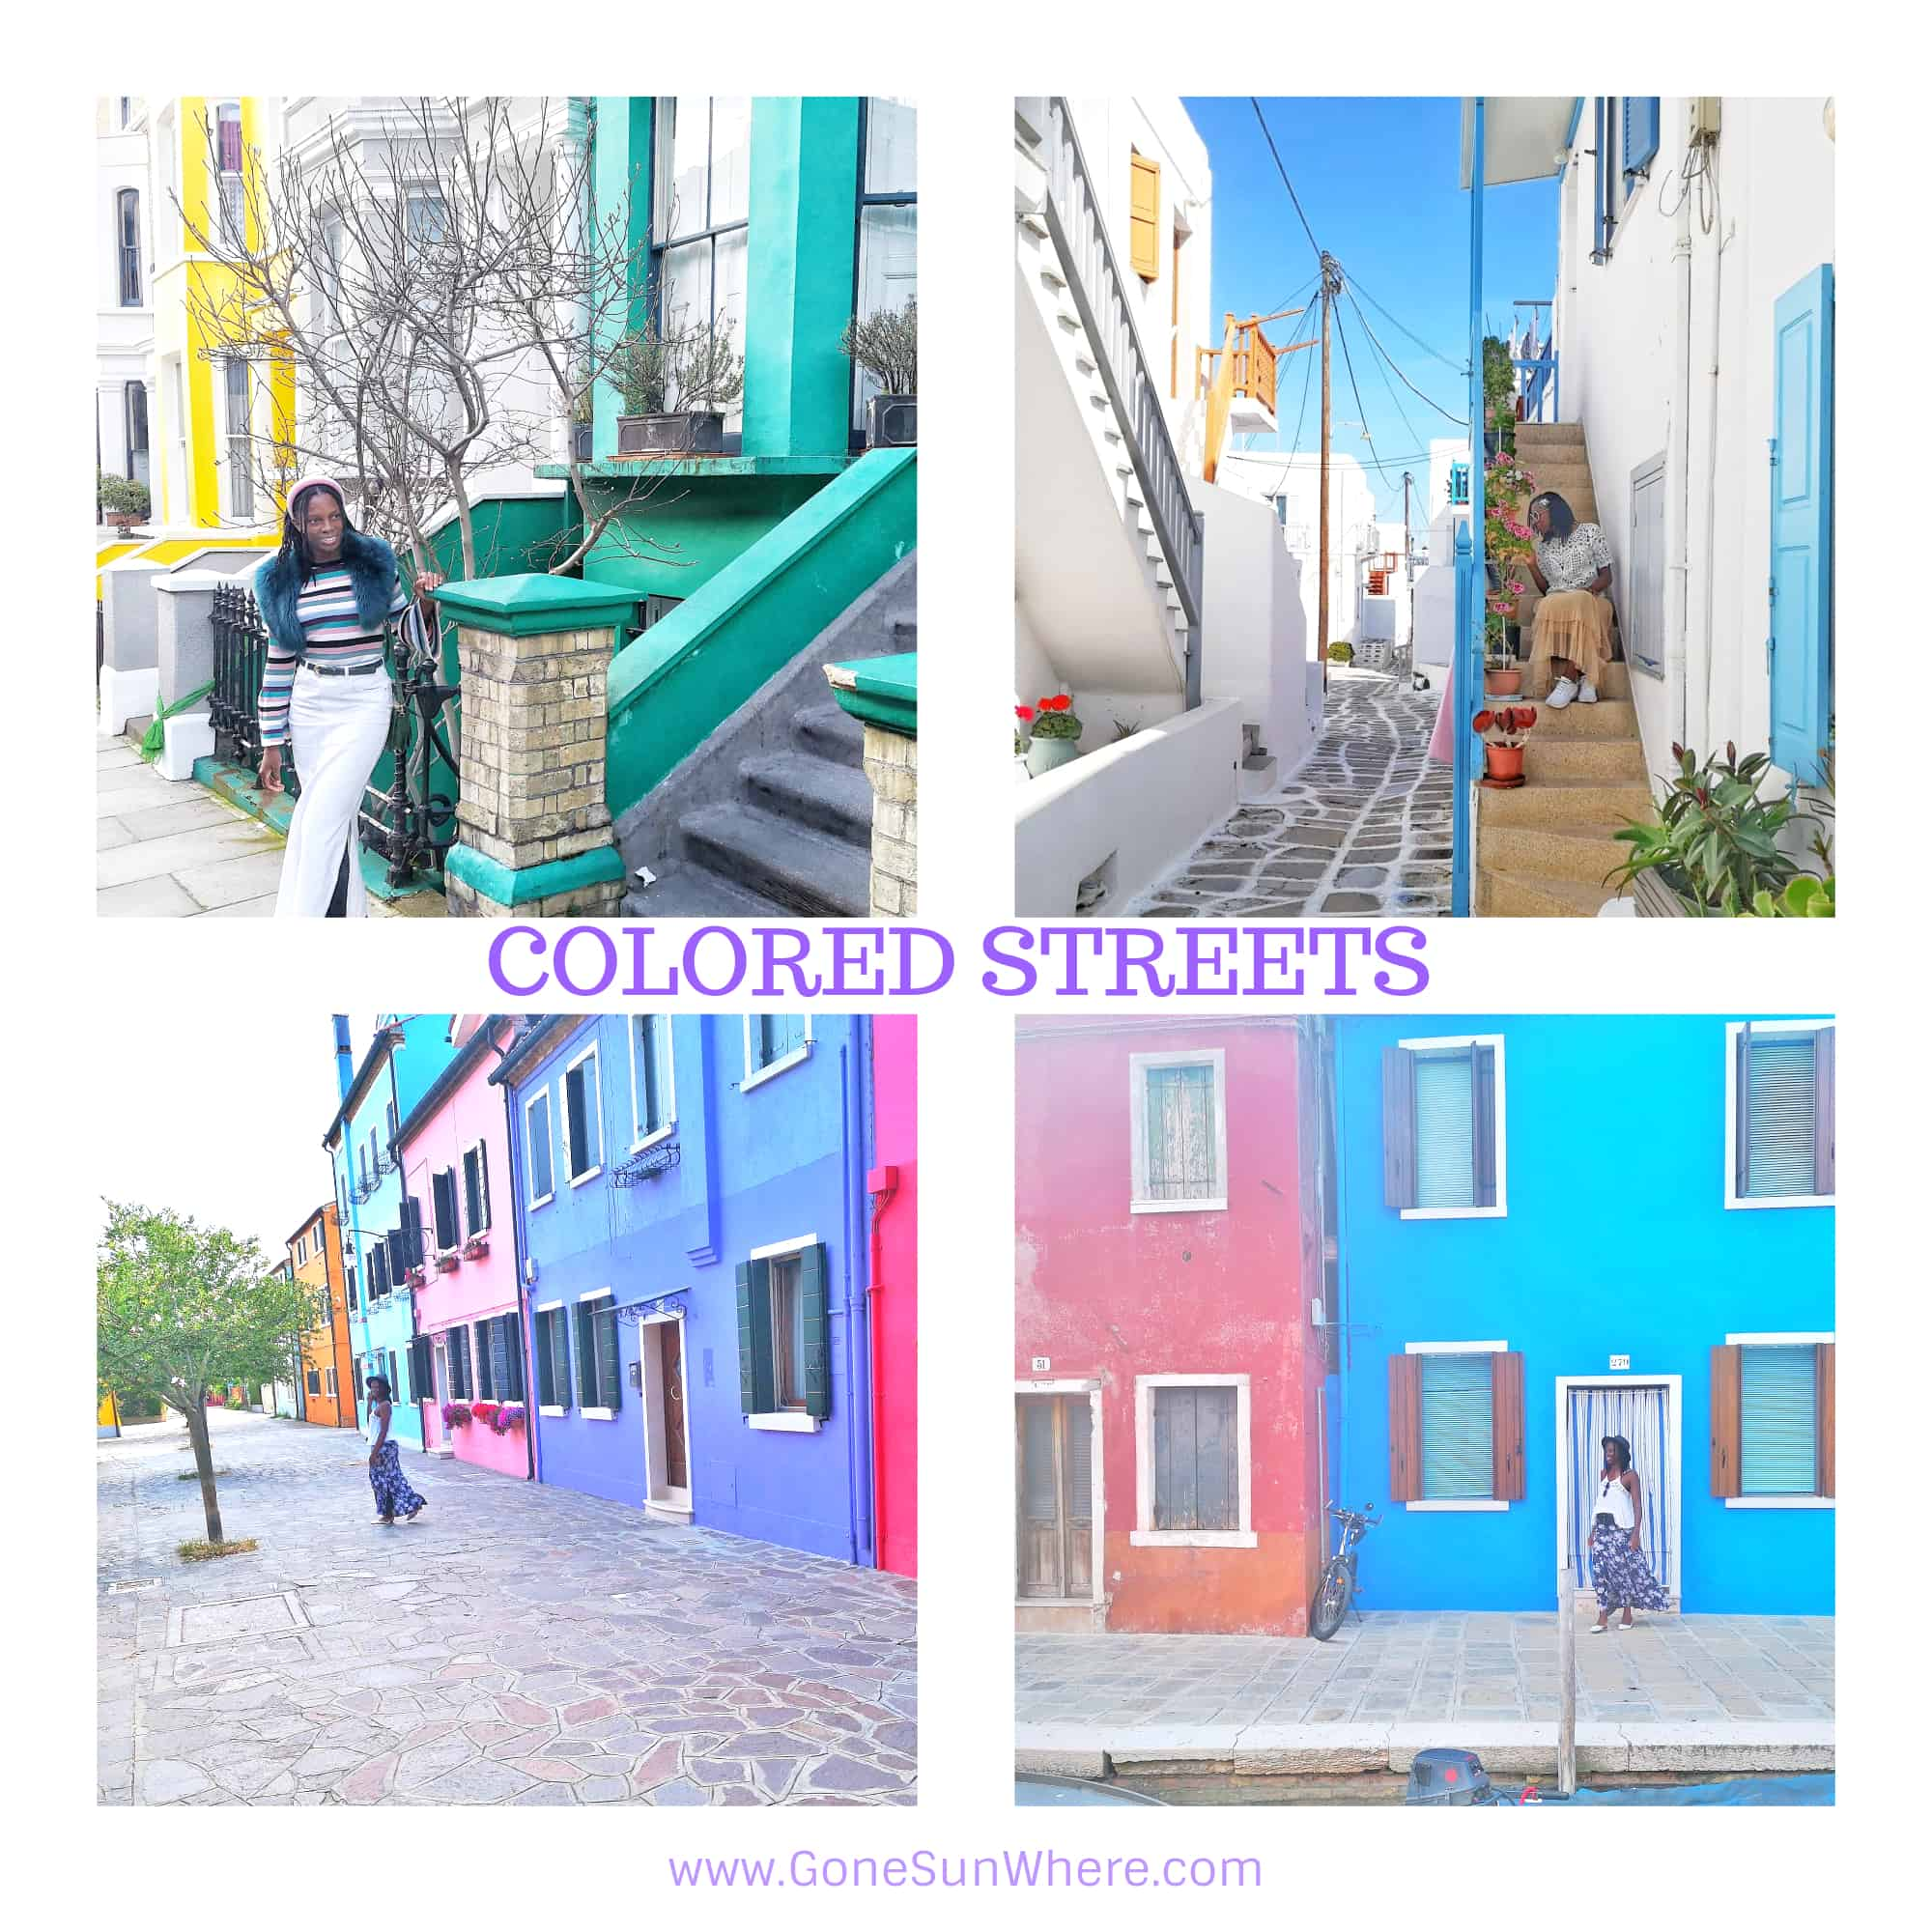 Colored Street Photos